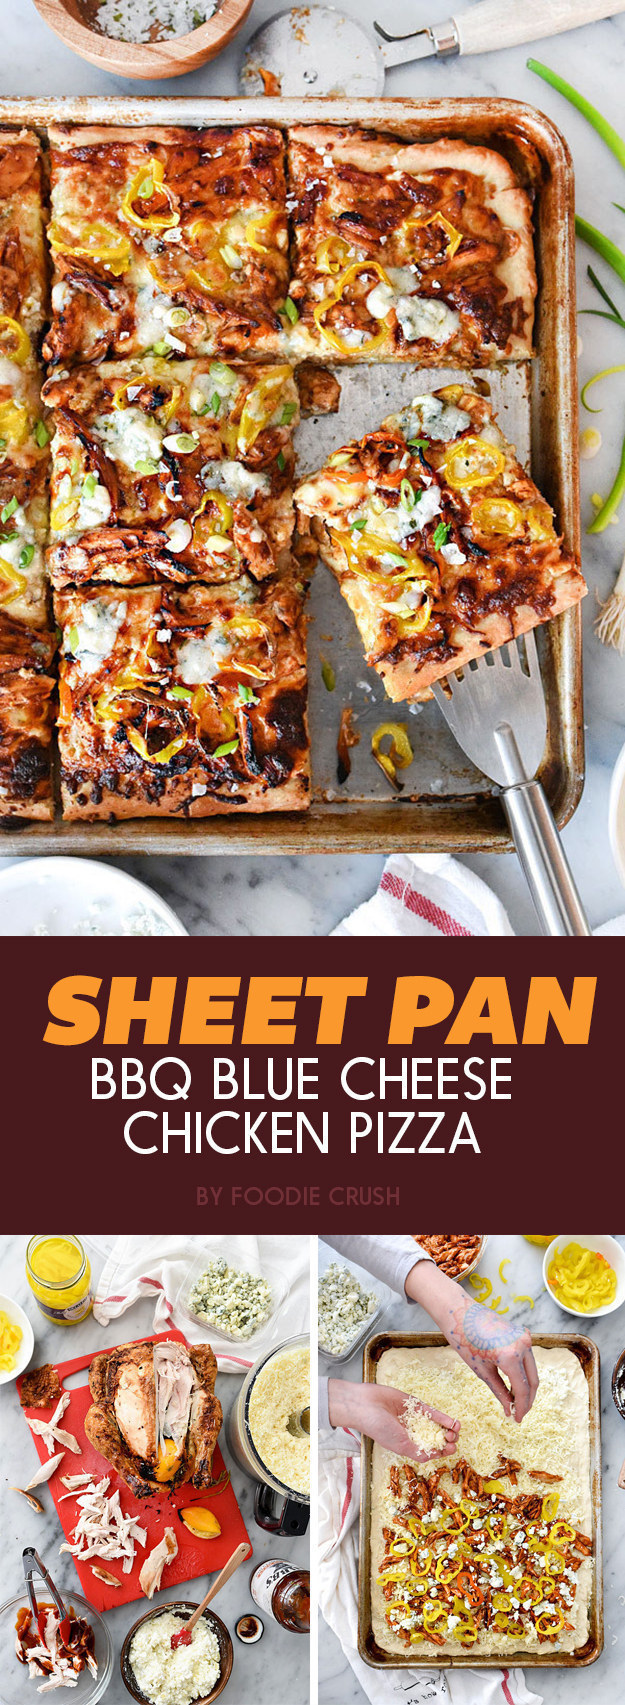 Sheet Pan BBQ Blue Cheese Chicken Pizza